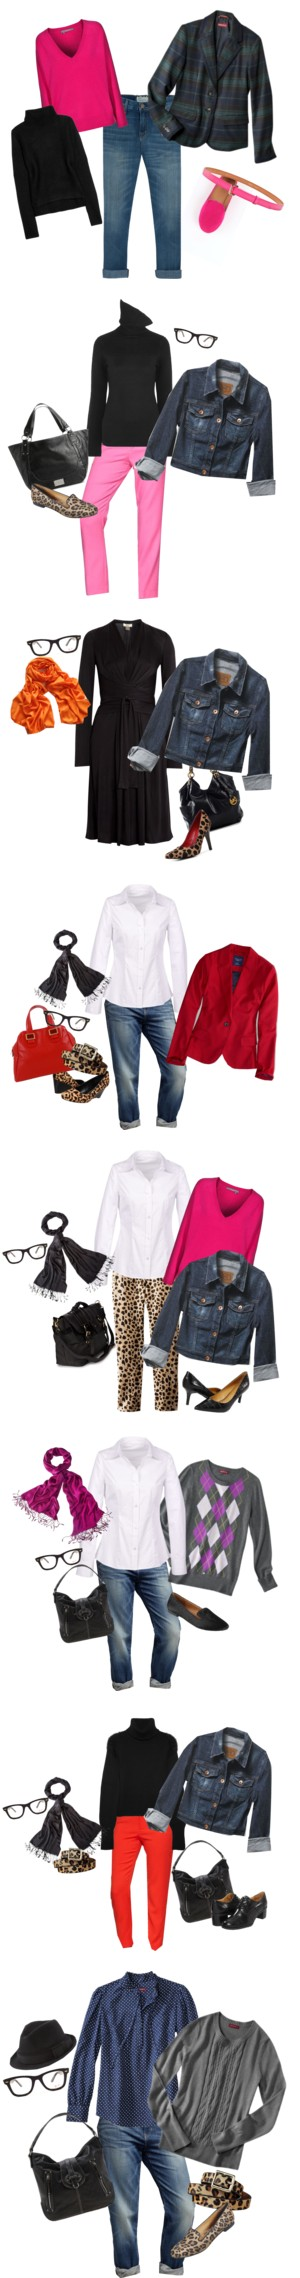 """December Closet Challege"" by michelle-jones-i on Polyvore"